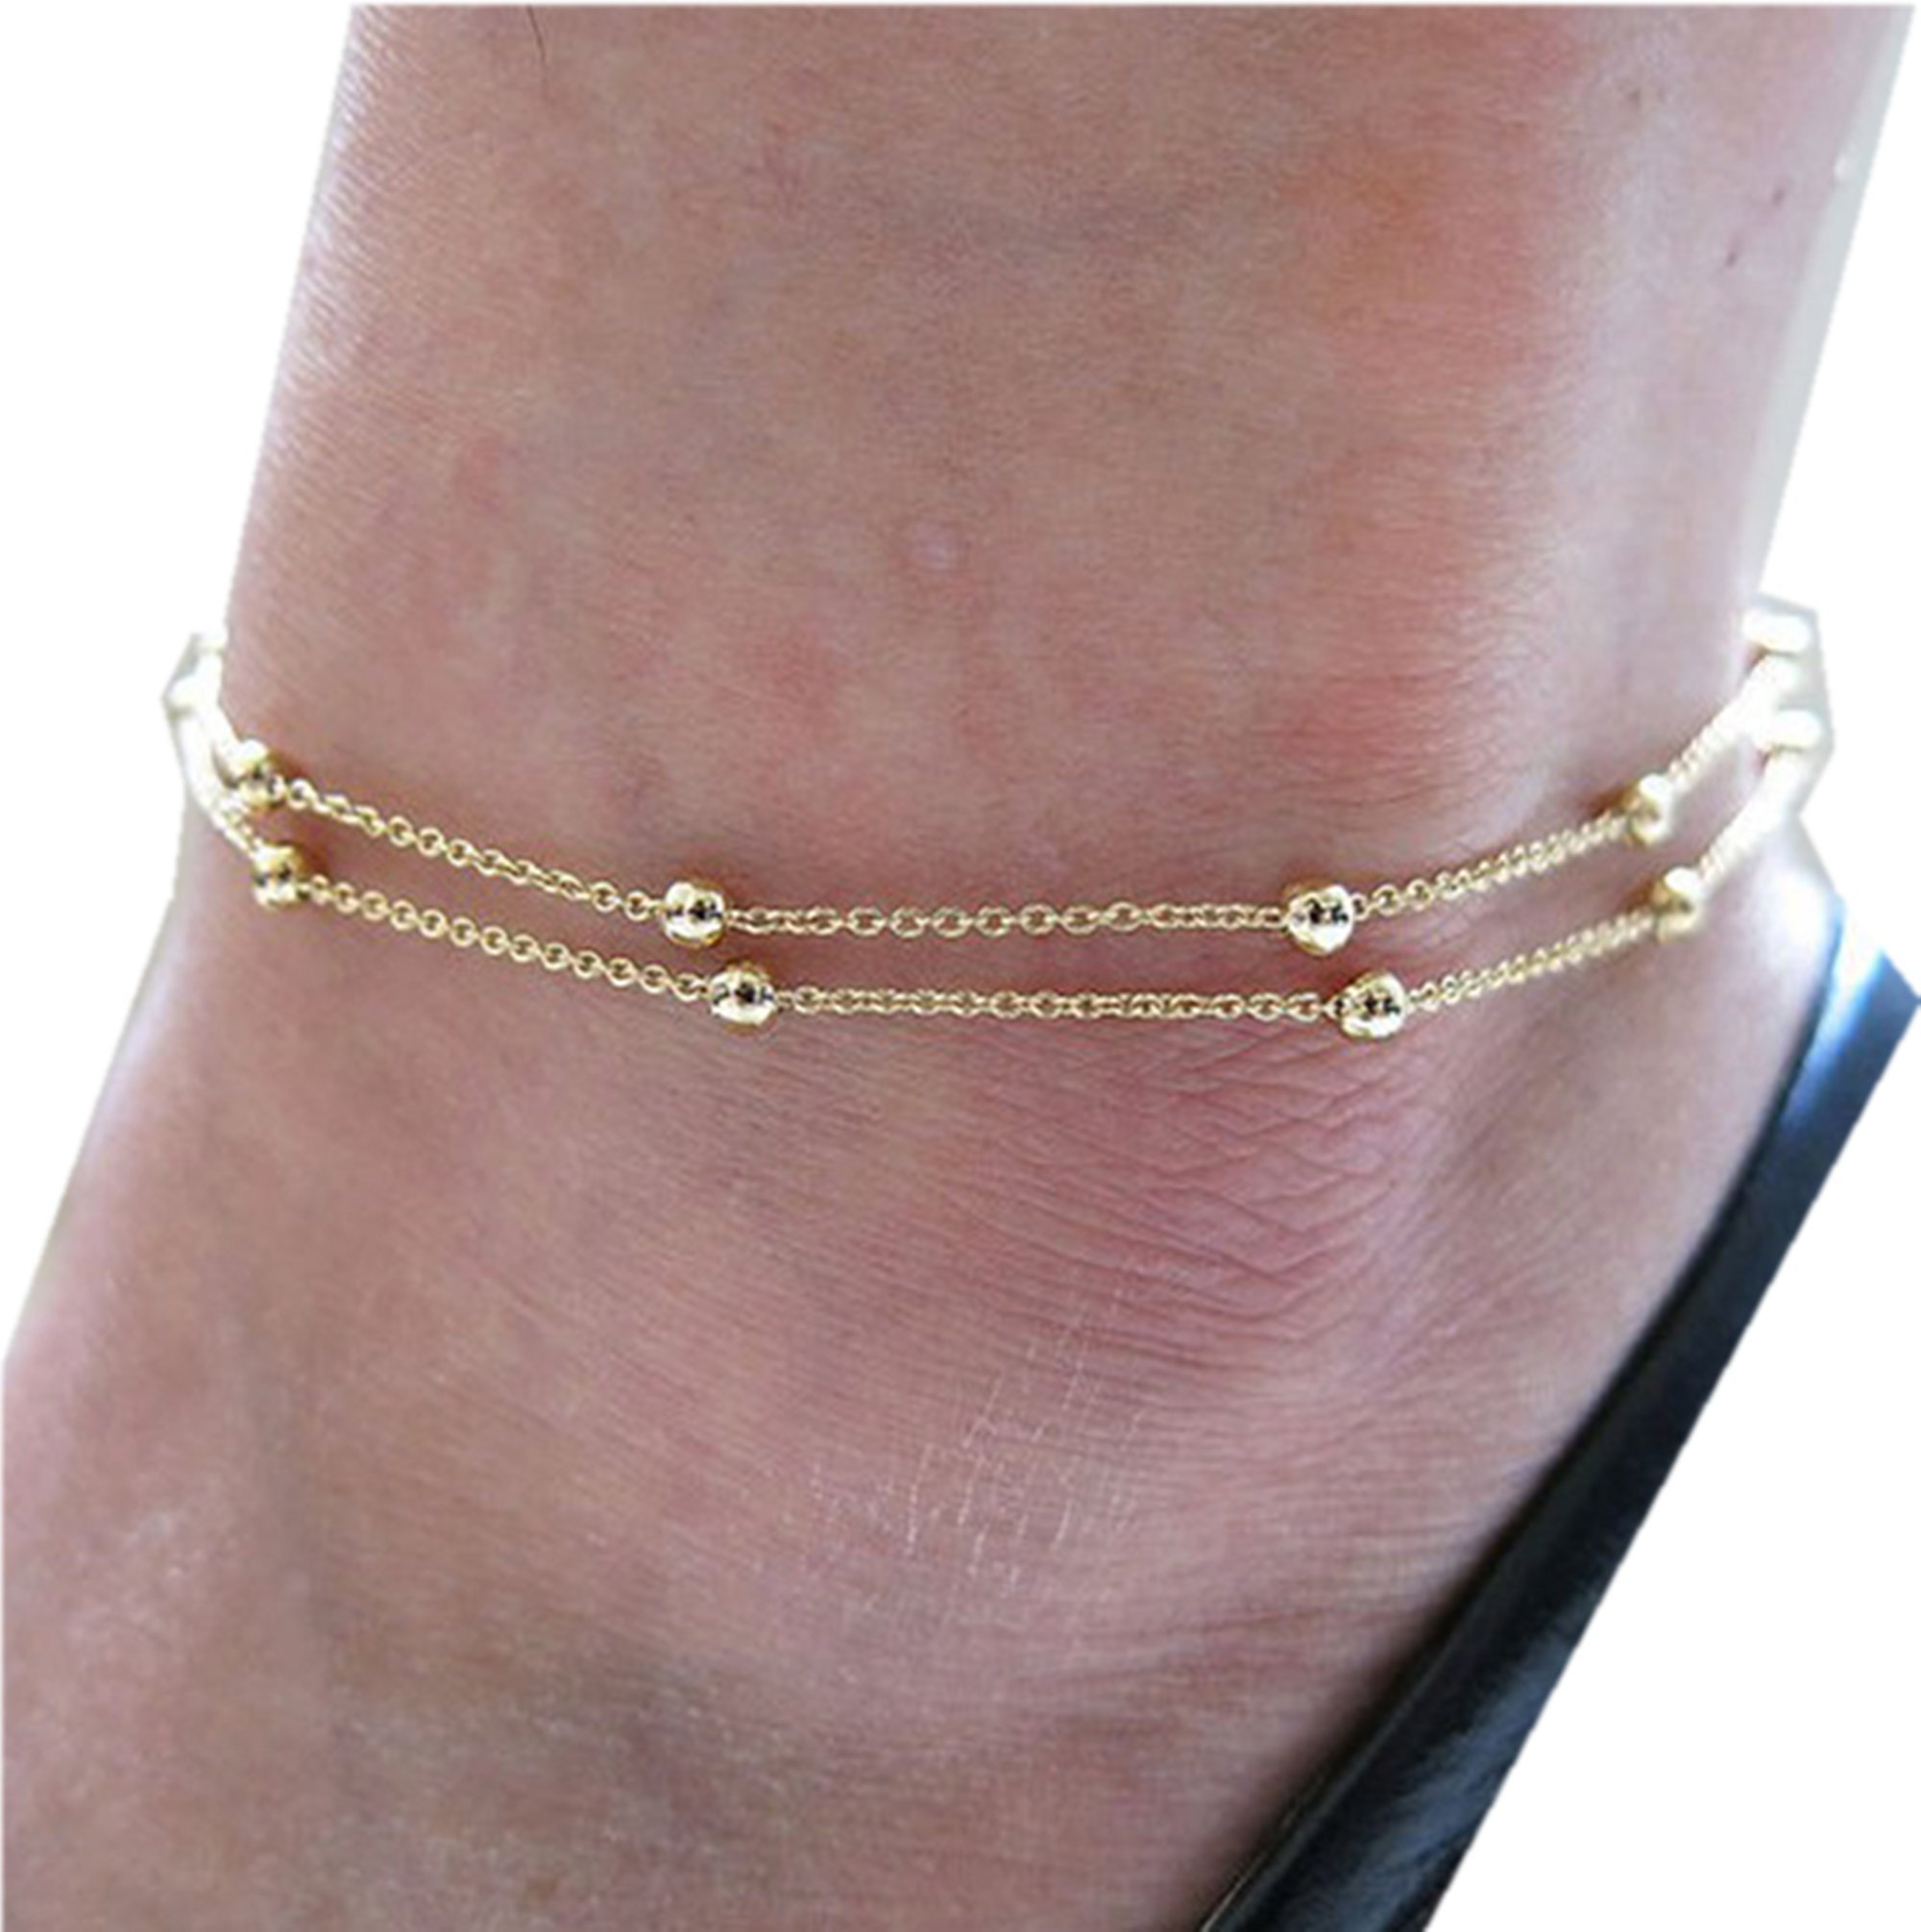 where com moon l g love bracelet bracelets you ankle back buy jewelry qvc c n can to anklet the i